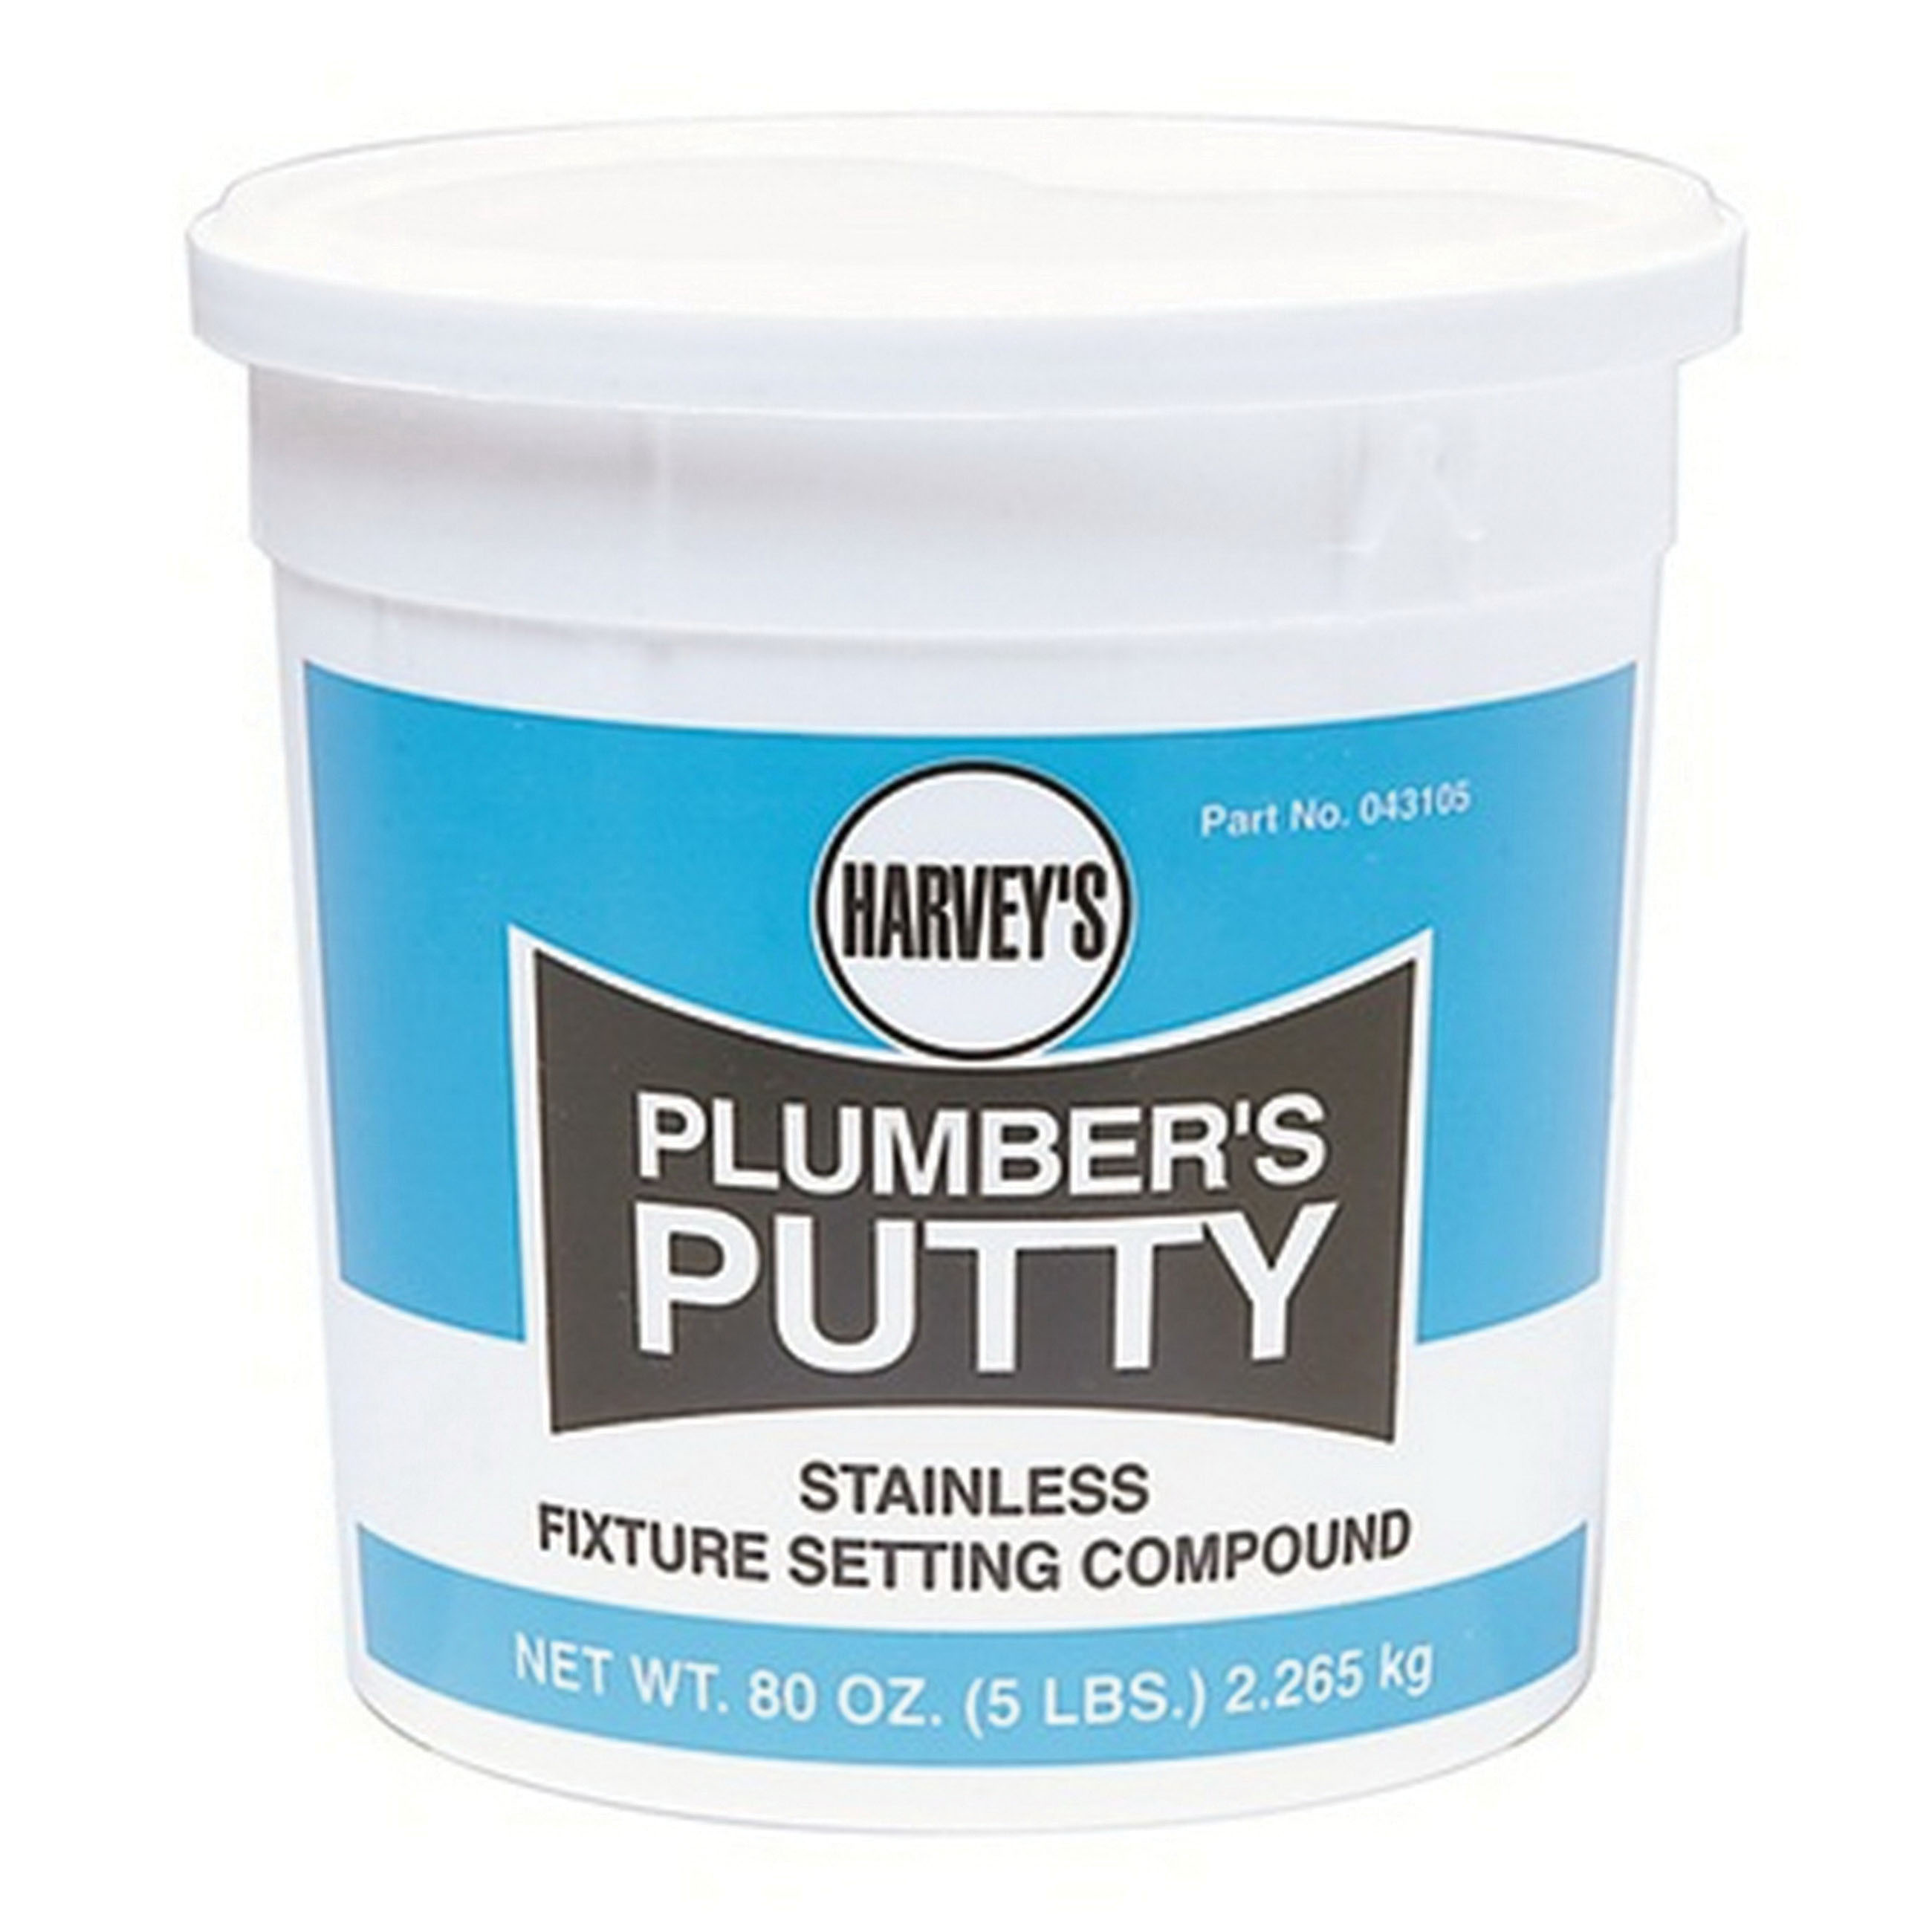 Harvey® 043105 Professional Grade Plumbers Putty, 5 lb, Off white